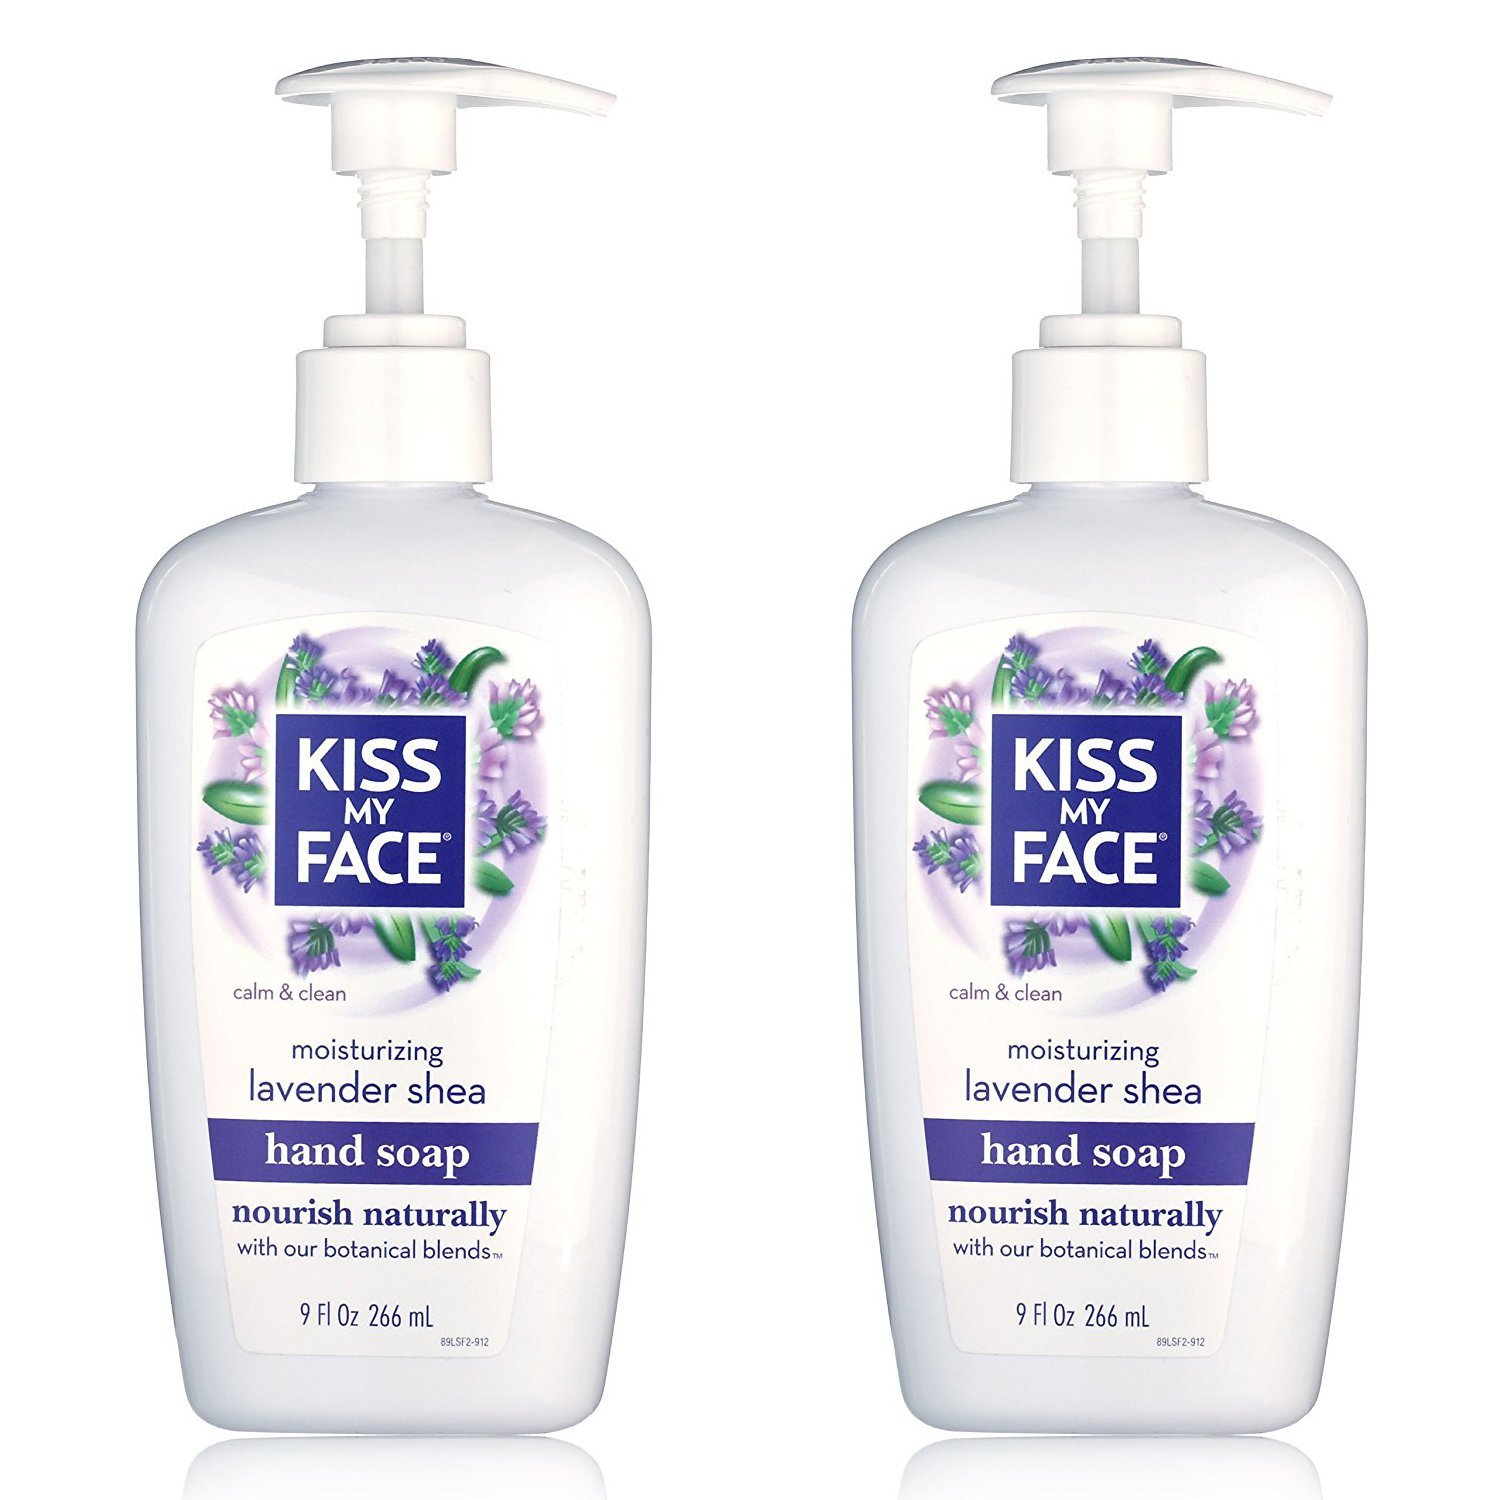 Kiss My Face Lavender Shea Moisturizing Hand Soap, 266ml Pumps (Pack of 2) 28367838081